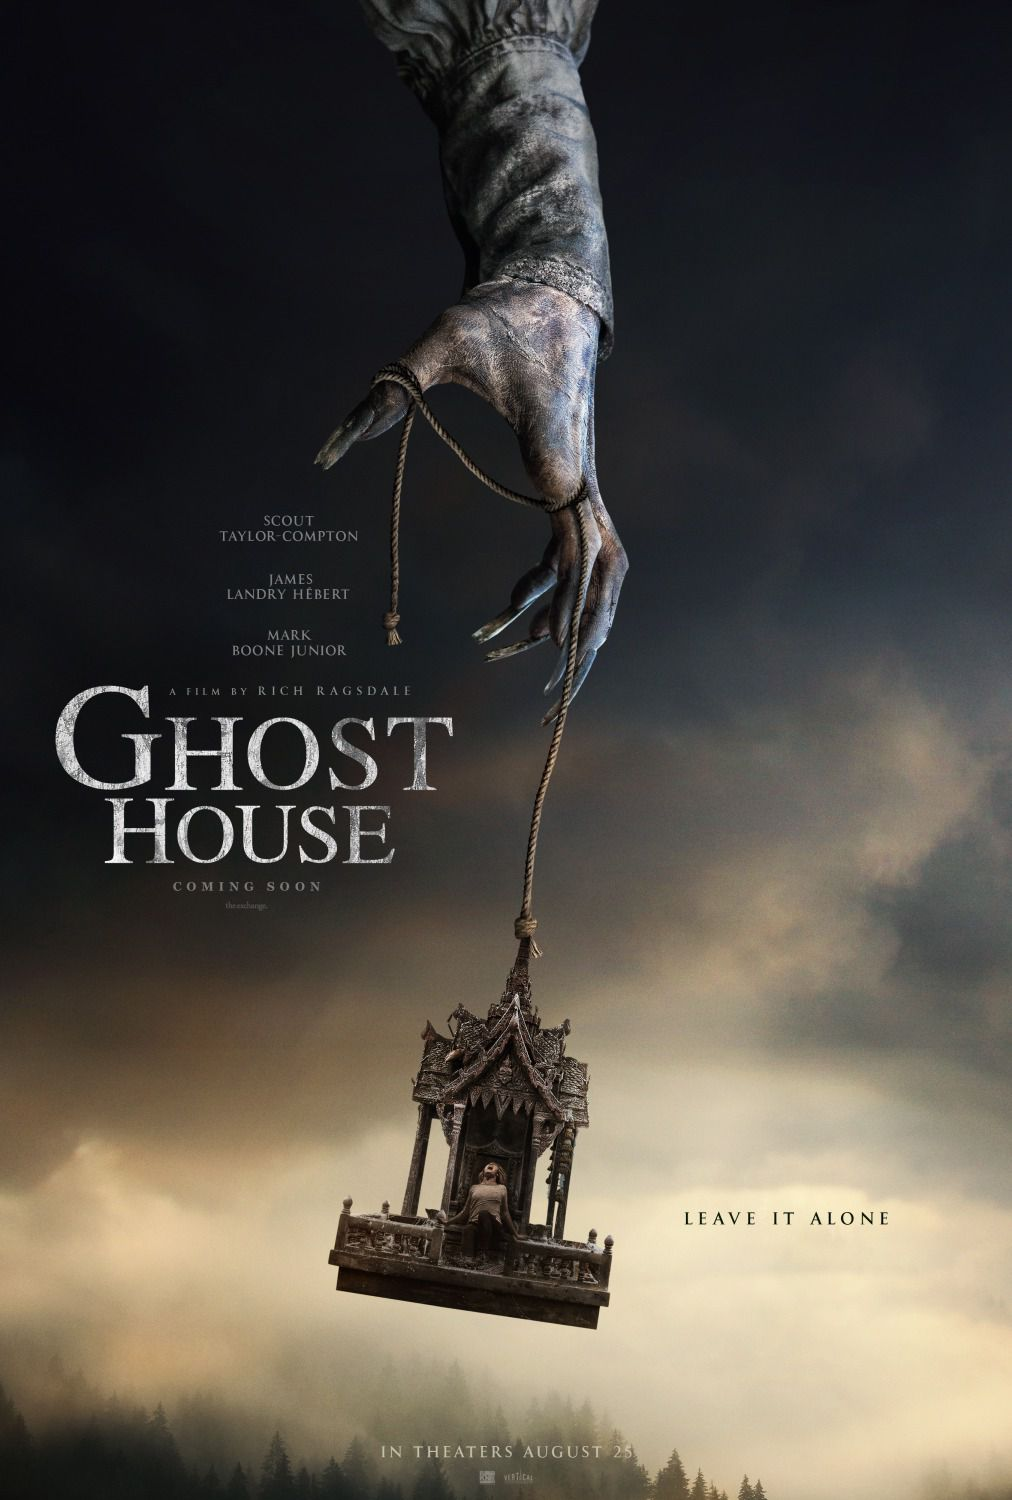 Ghost House - horror poster - Scout Taylor Compton - James Landry Hebert - Mark Boone Junior - Michael S New